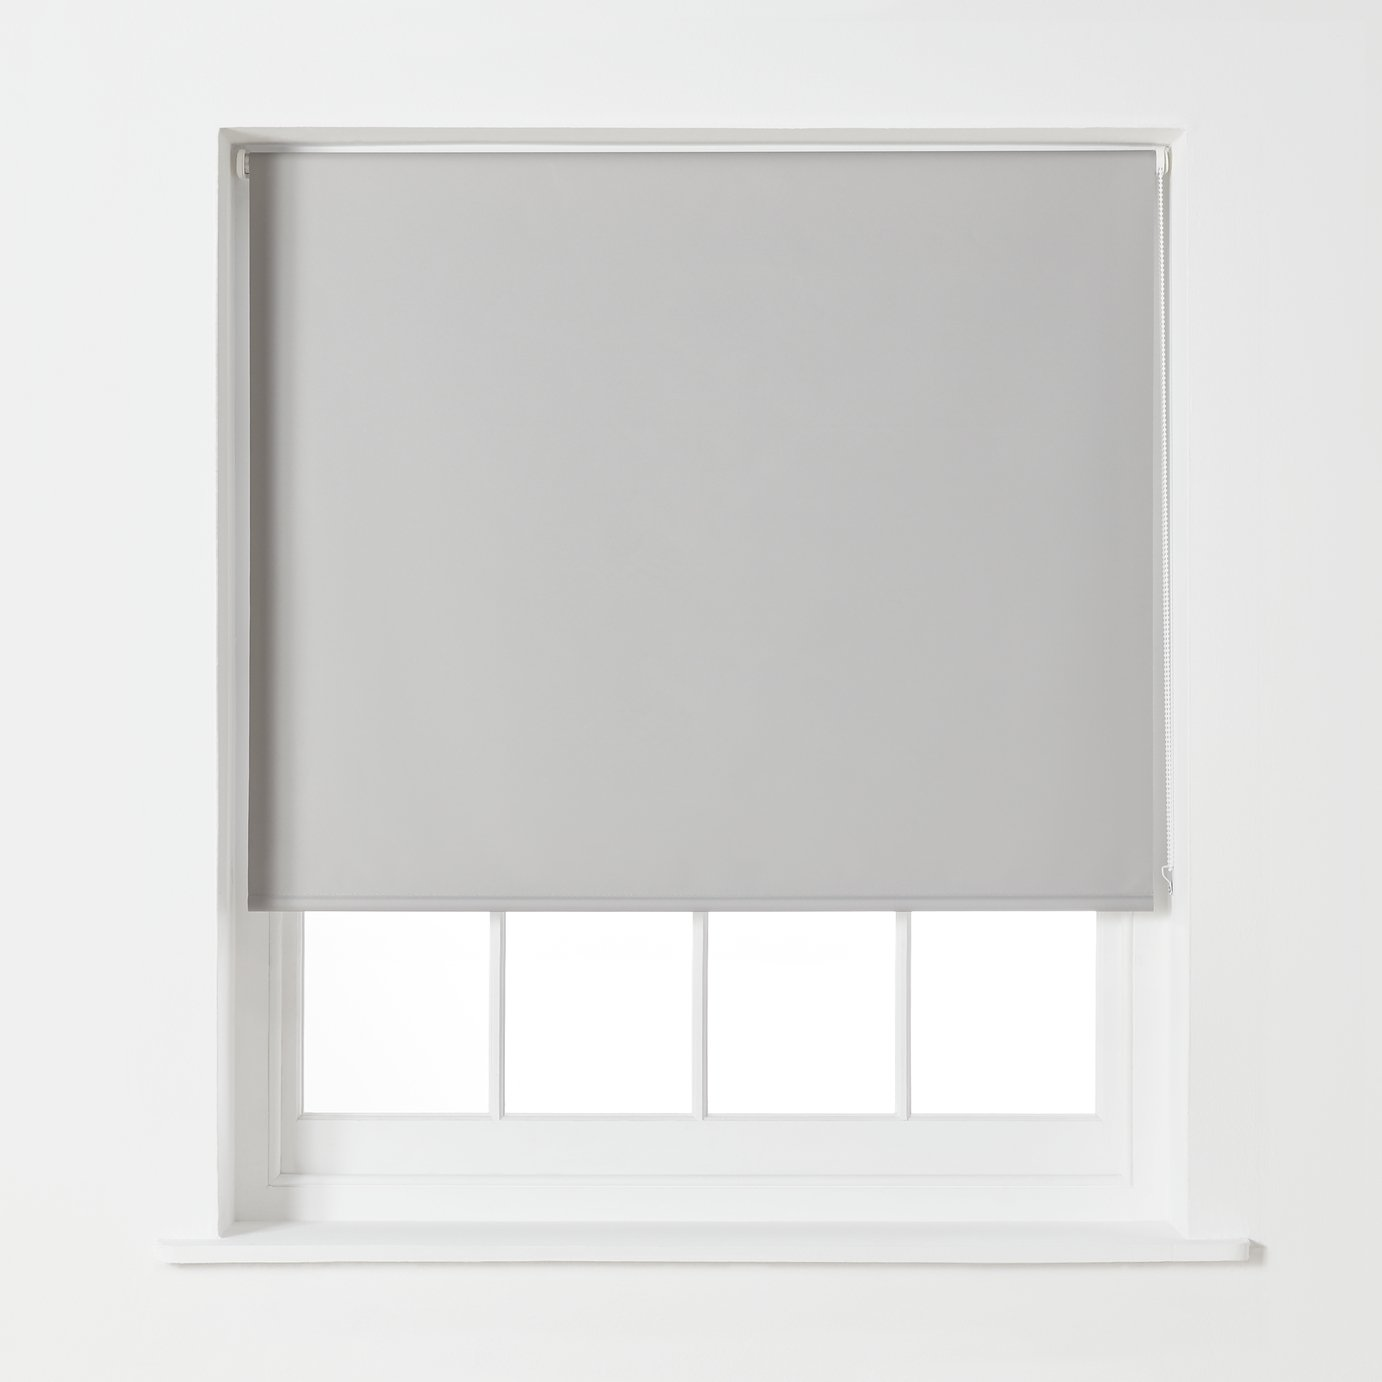 Argos Home Blackout Roller Blind - 2ft - Dove Grey